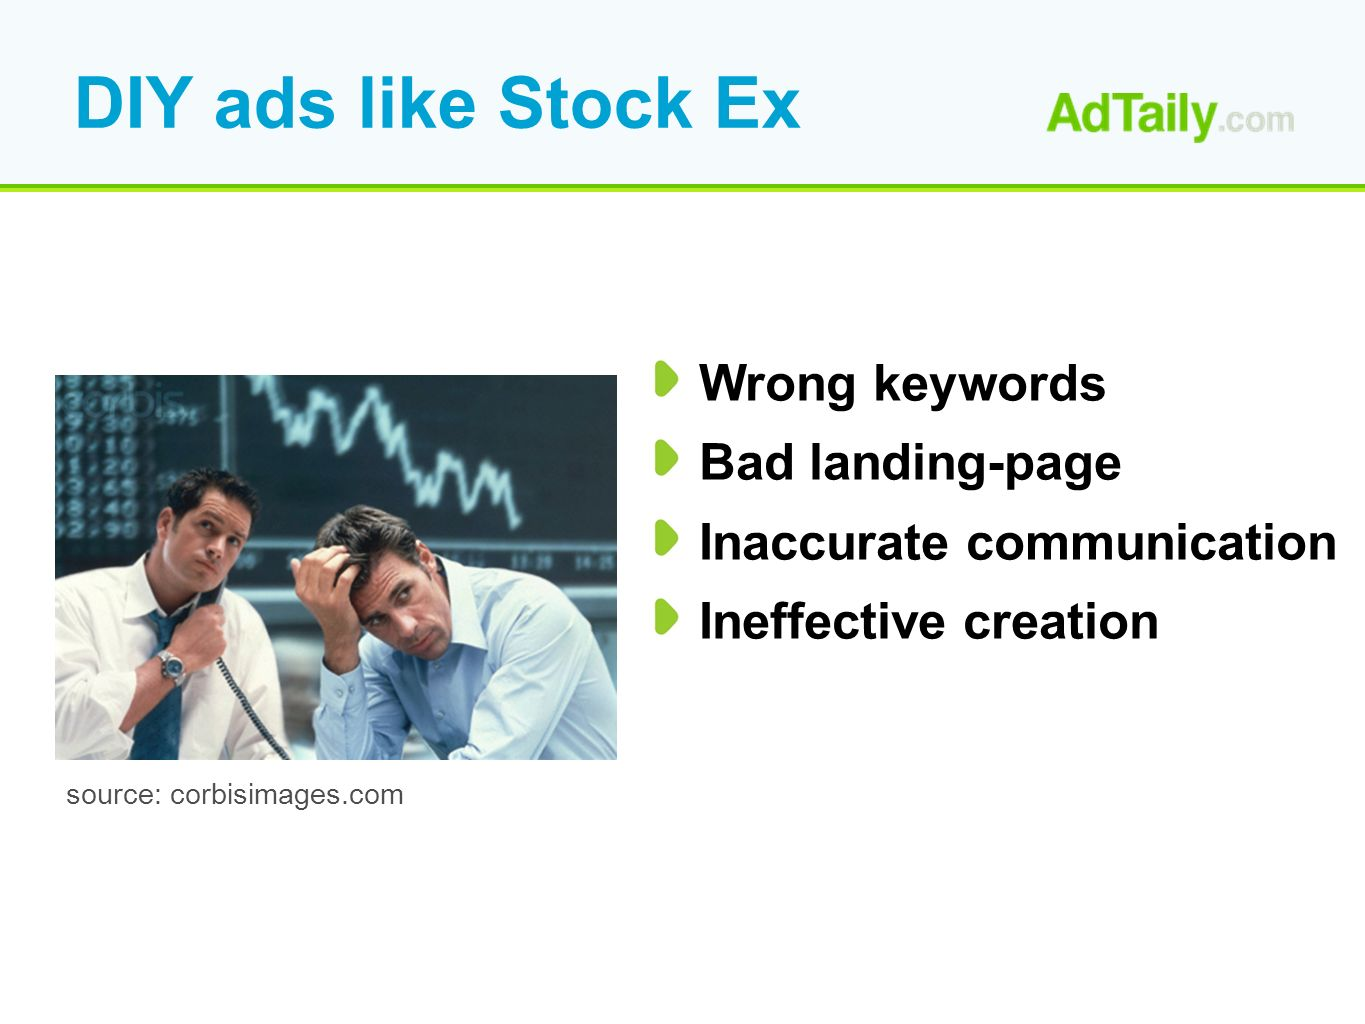 DIY ads like Stock Ex Wrong keywords Bad landing-page Inaccurate communication Ineffective creation source: corbisimages.com